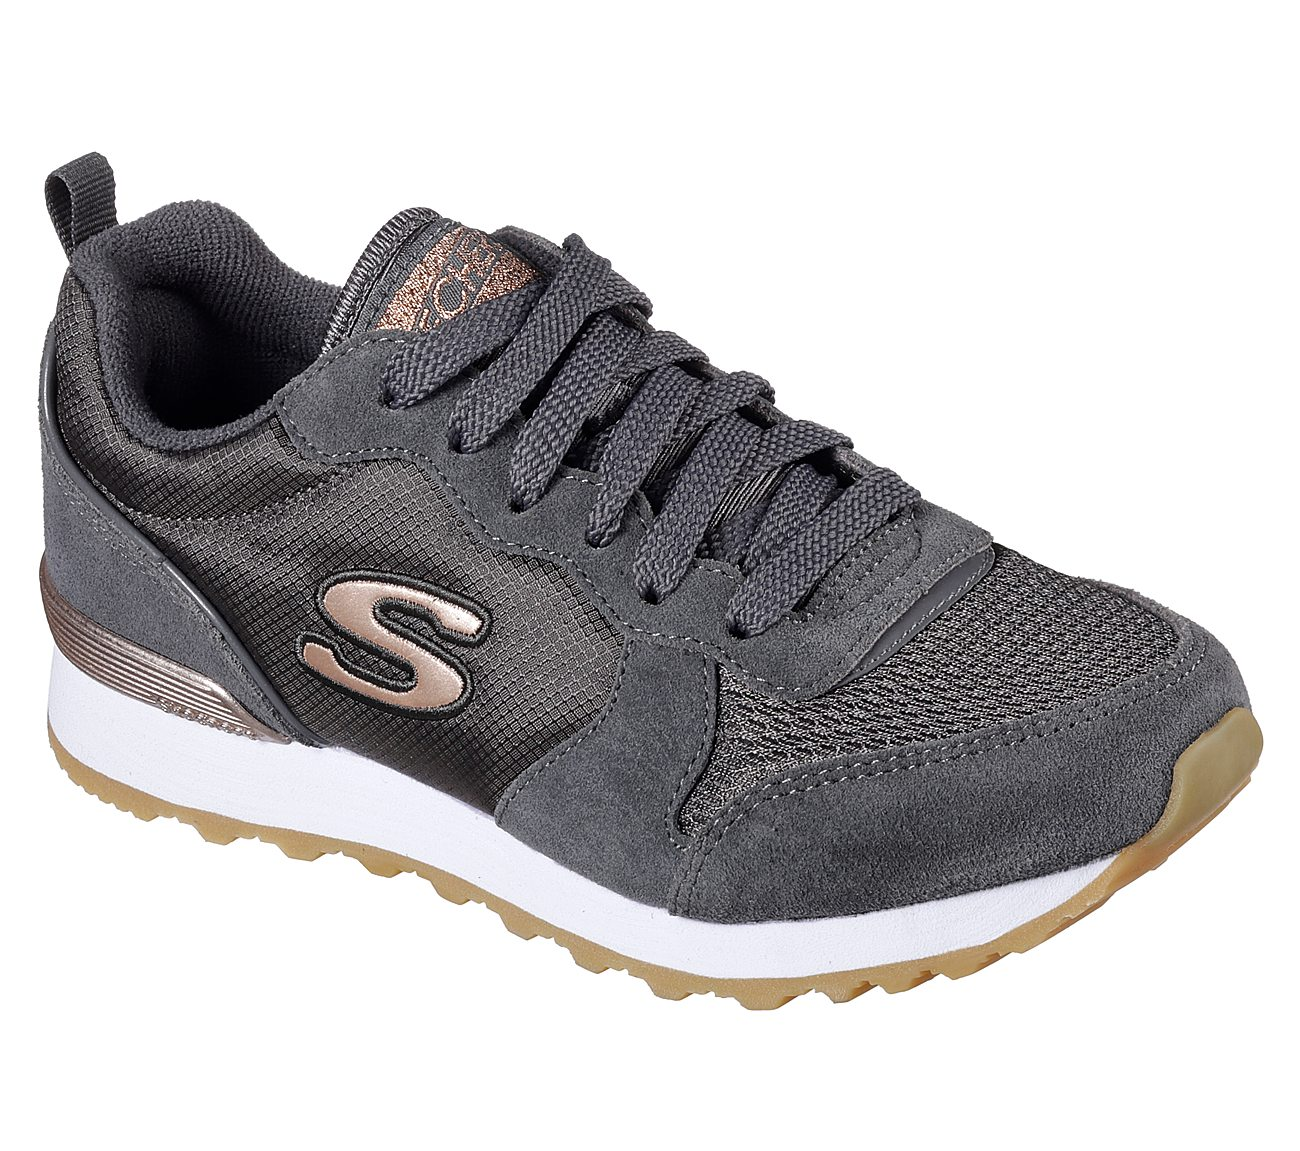 SKECHERS Da Donna OG 85 Goldn Gurl SKECHERS Italia